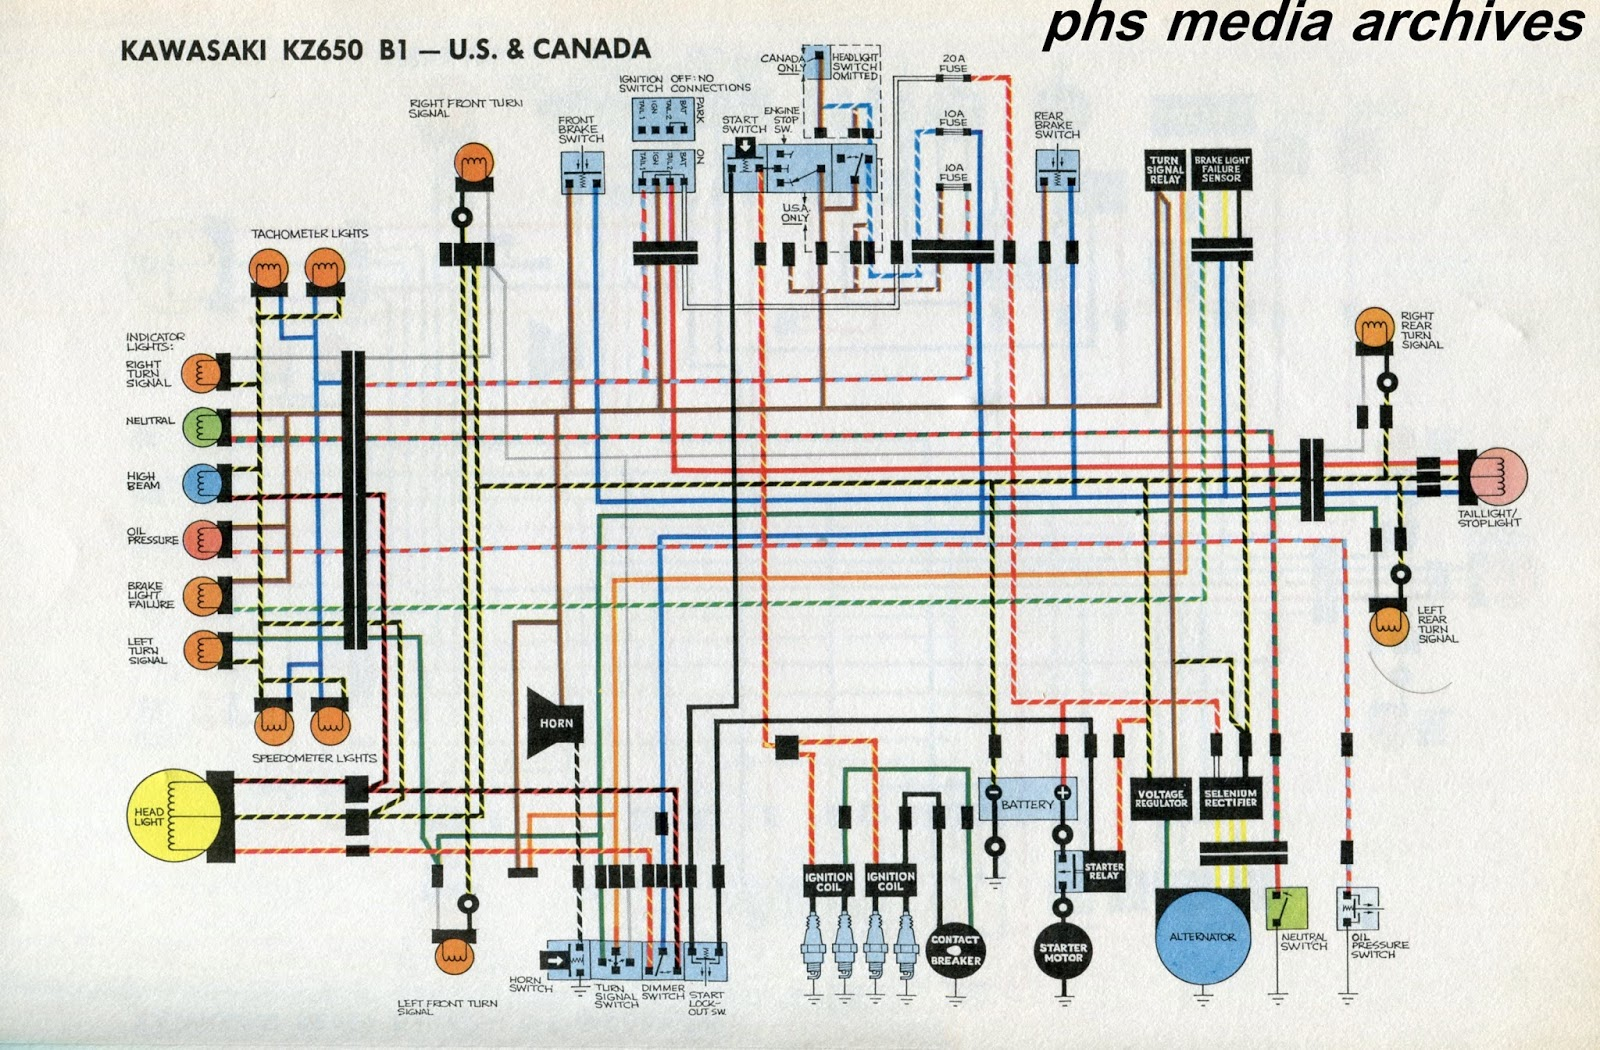 medium resolution of 1977 kawasaki wiring diagrams simple wiring schema 1978 kz650 wiring diagram 1977 kz650 wiring diagram